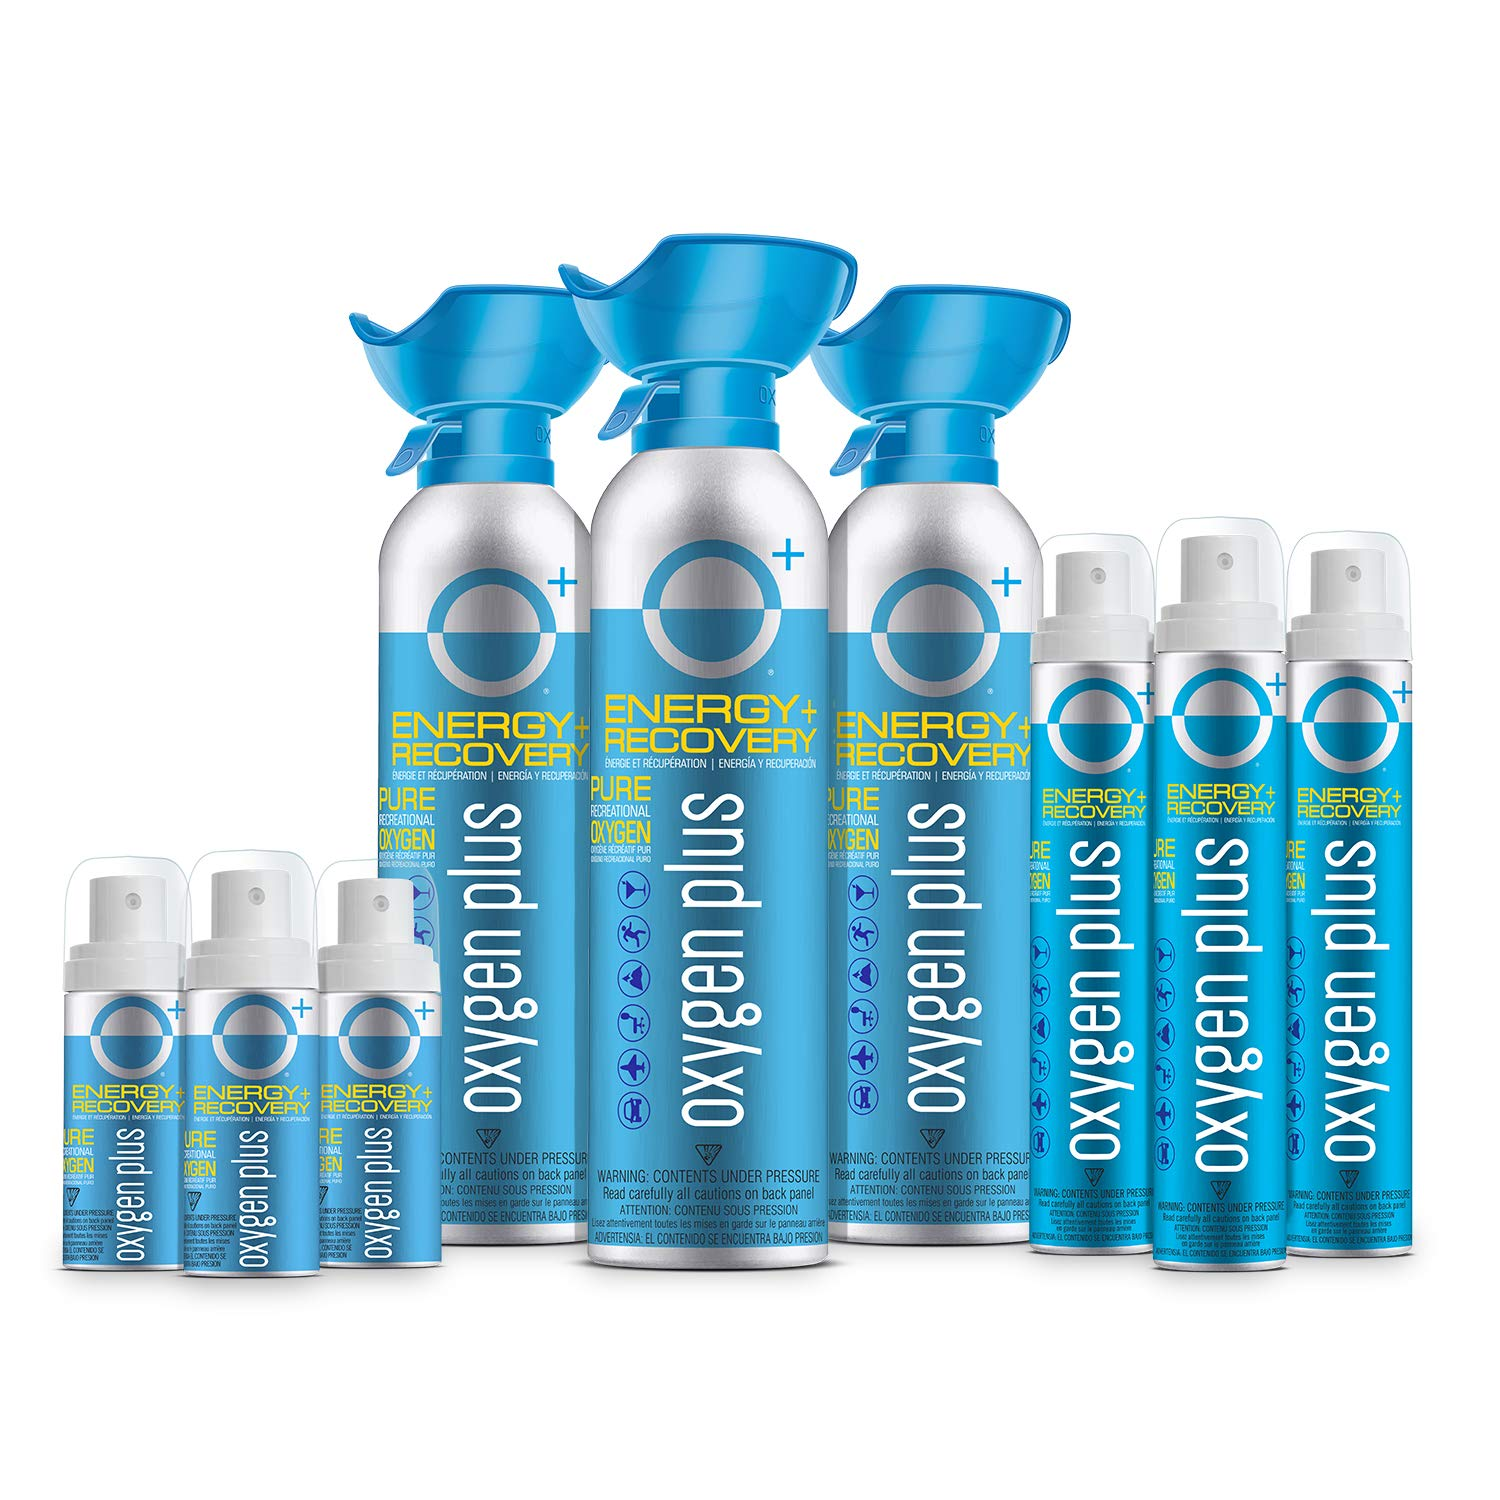 Oxygen Plus Oxygen Cans Trifecta Pack: 3 O+ Biggi, 3 O+ Skinni & 3 O+ Mini - Boost Oxygen Levels with Portable & Concentrated Recreational Oxygen for Altitude Performance & Energy